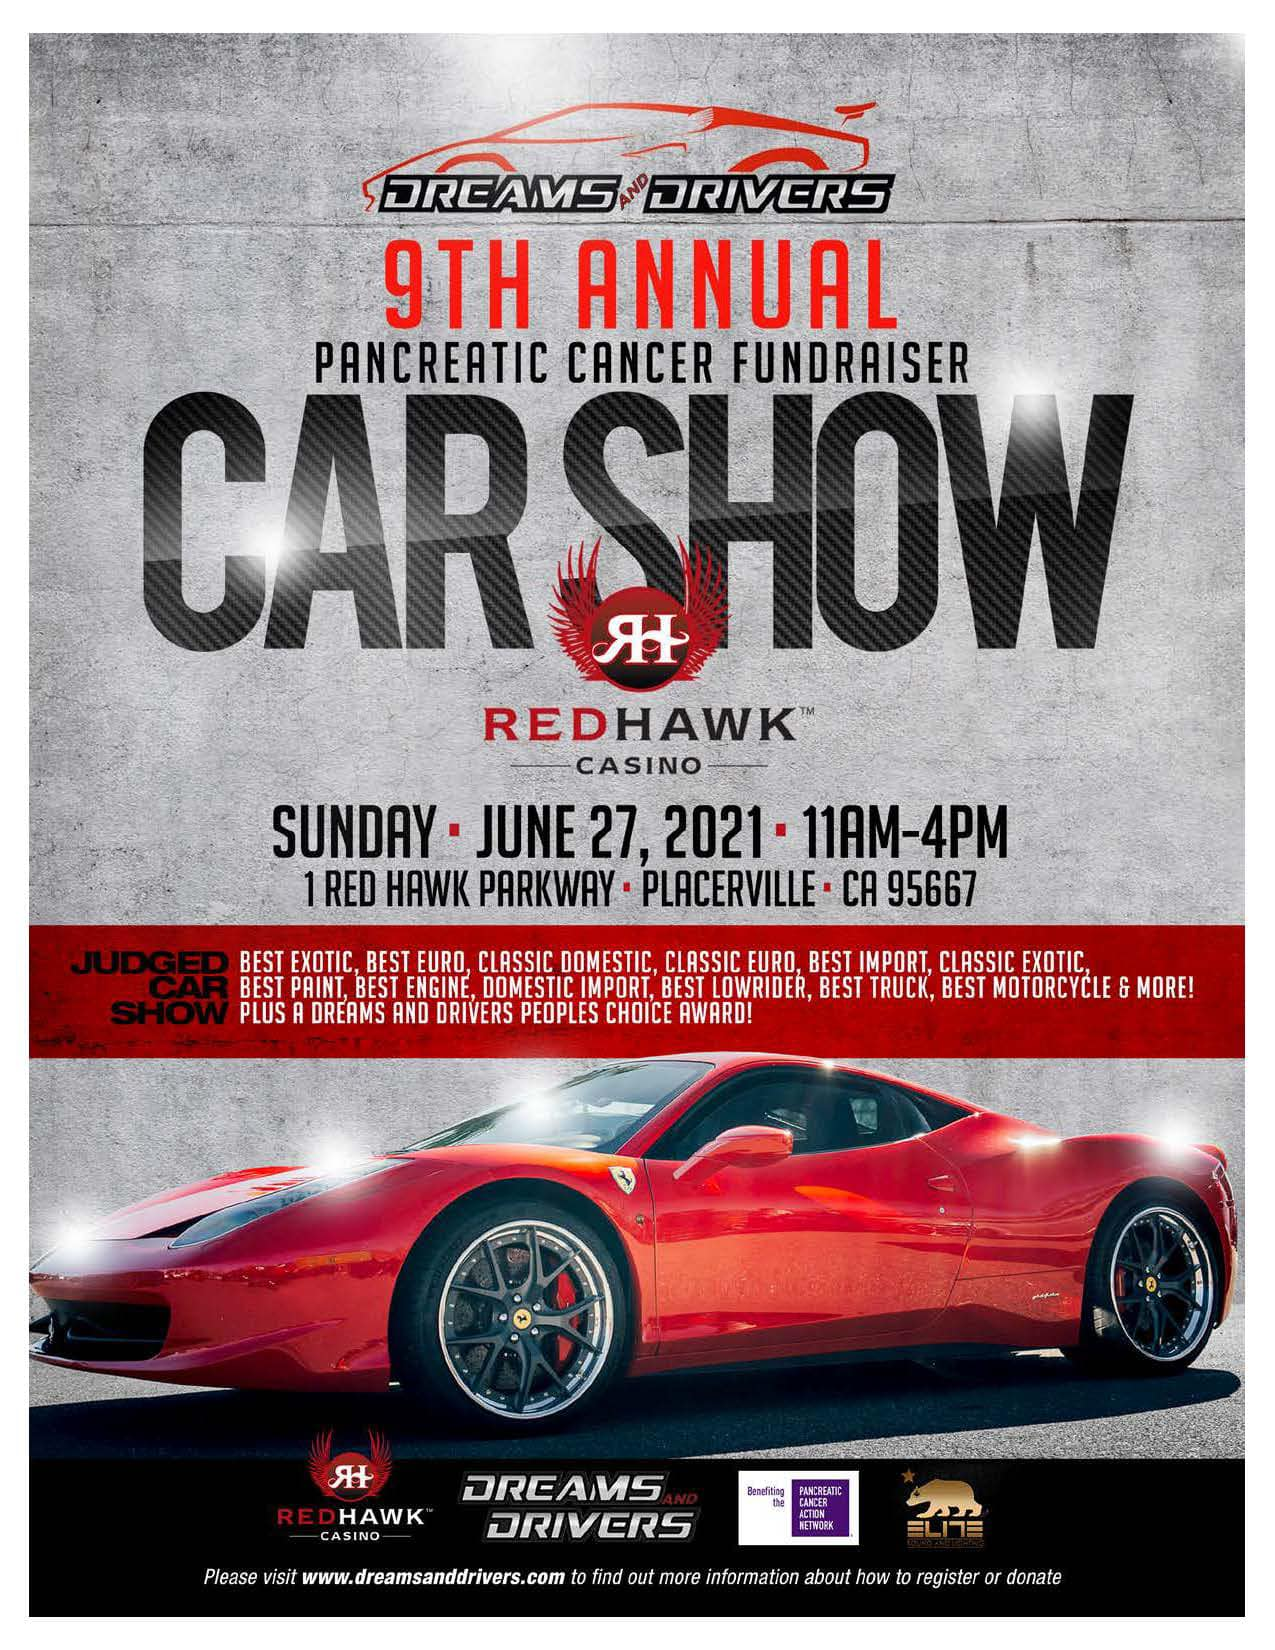 Dreams and Drivers Pancreatic Cancer Fundraiser Car Show